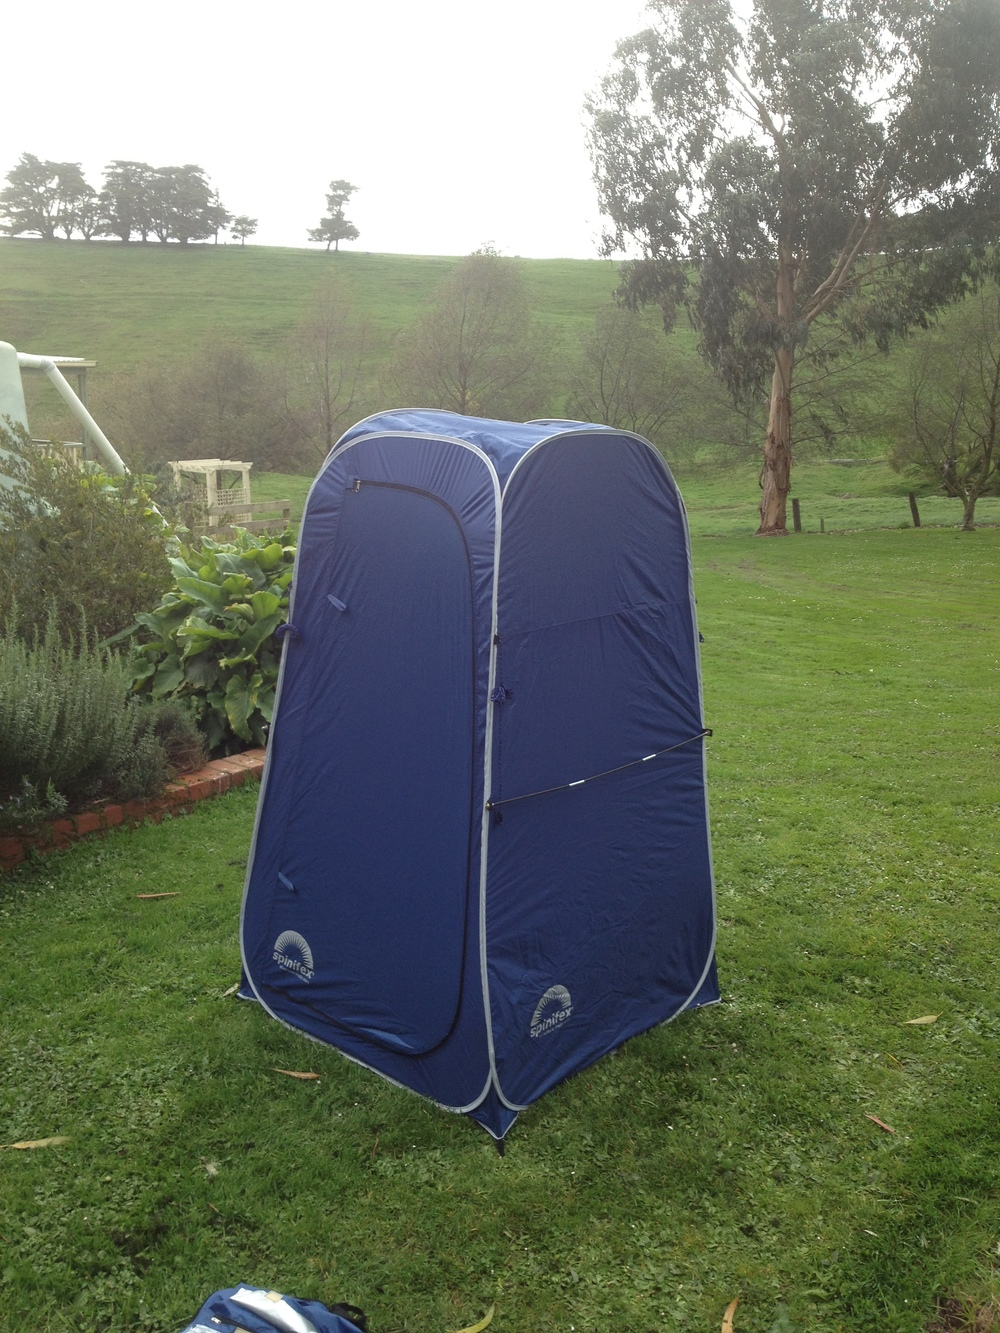 The camping shower tent that is the base of the mobile darkroom